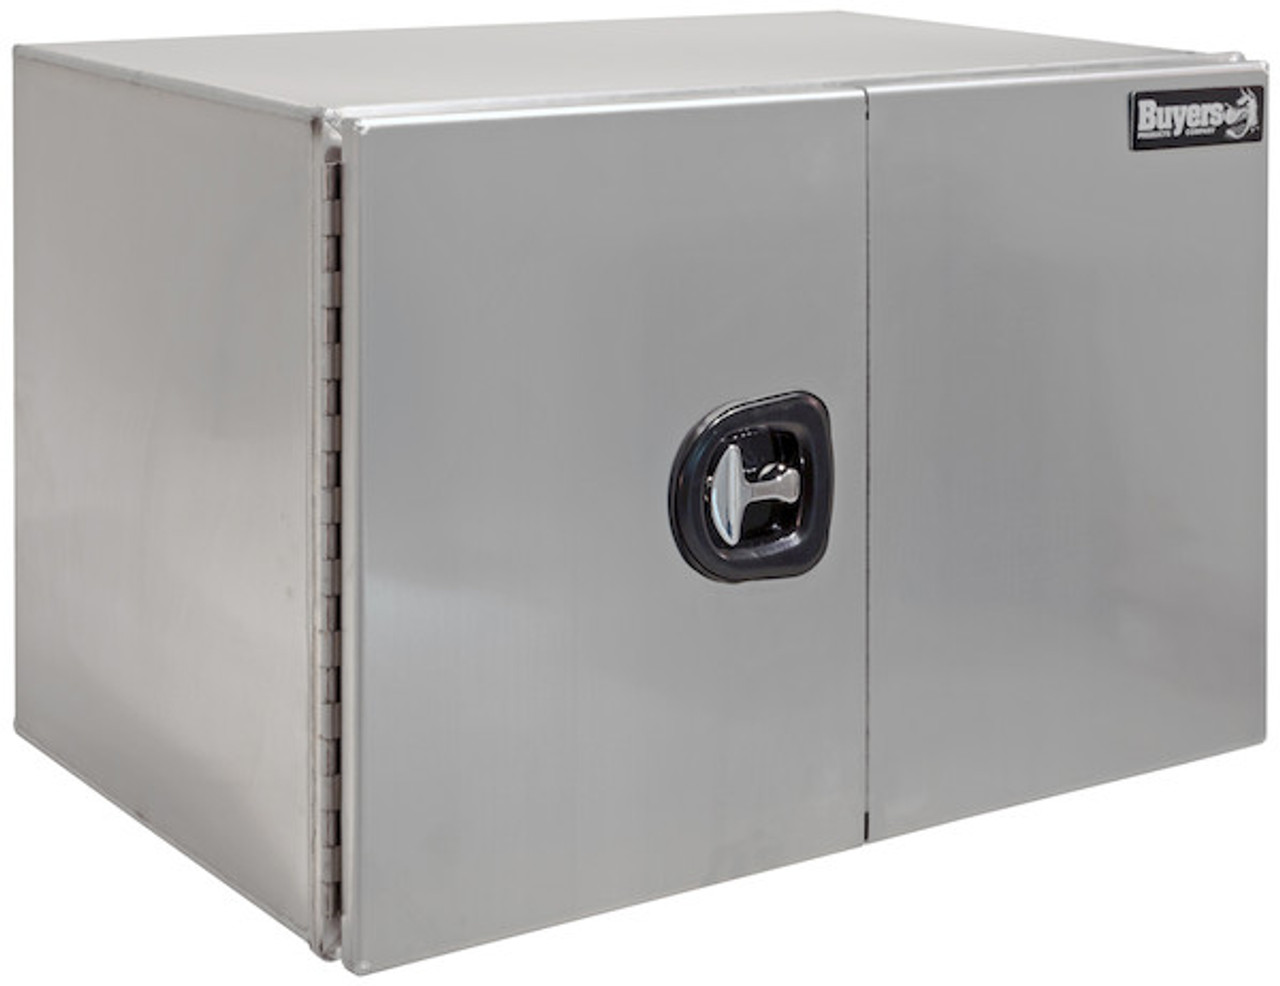 "1705415 BUYERS PRODUCTS XD SMOOTH ALUMINUM UNDERBODY TOOLBOX WITH BARN DOOR 18""HX18""DX60""W"